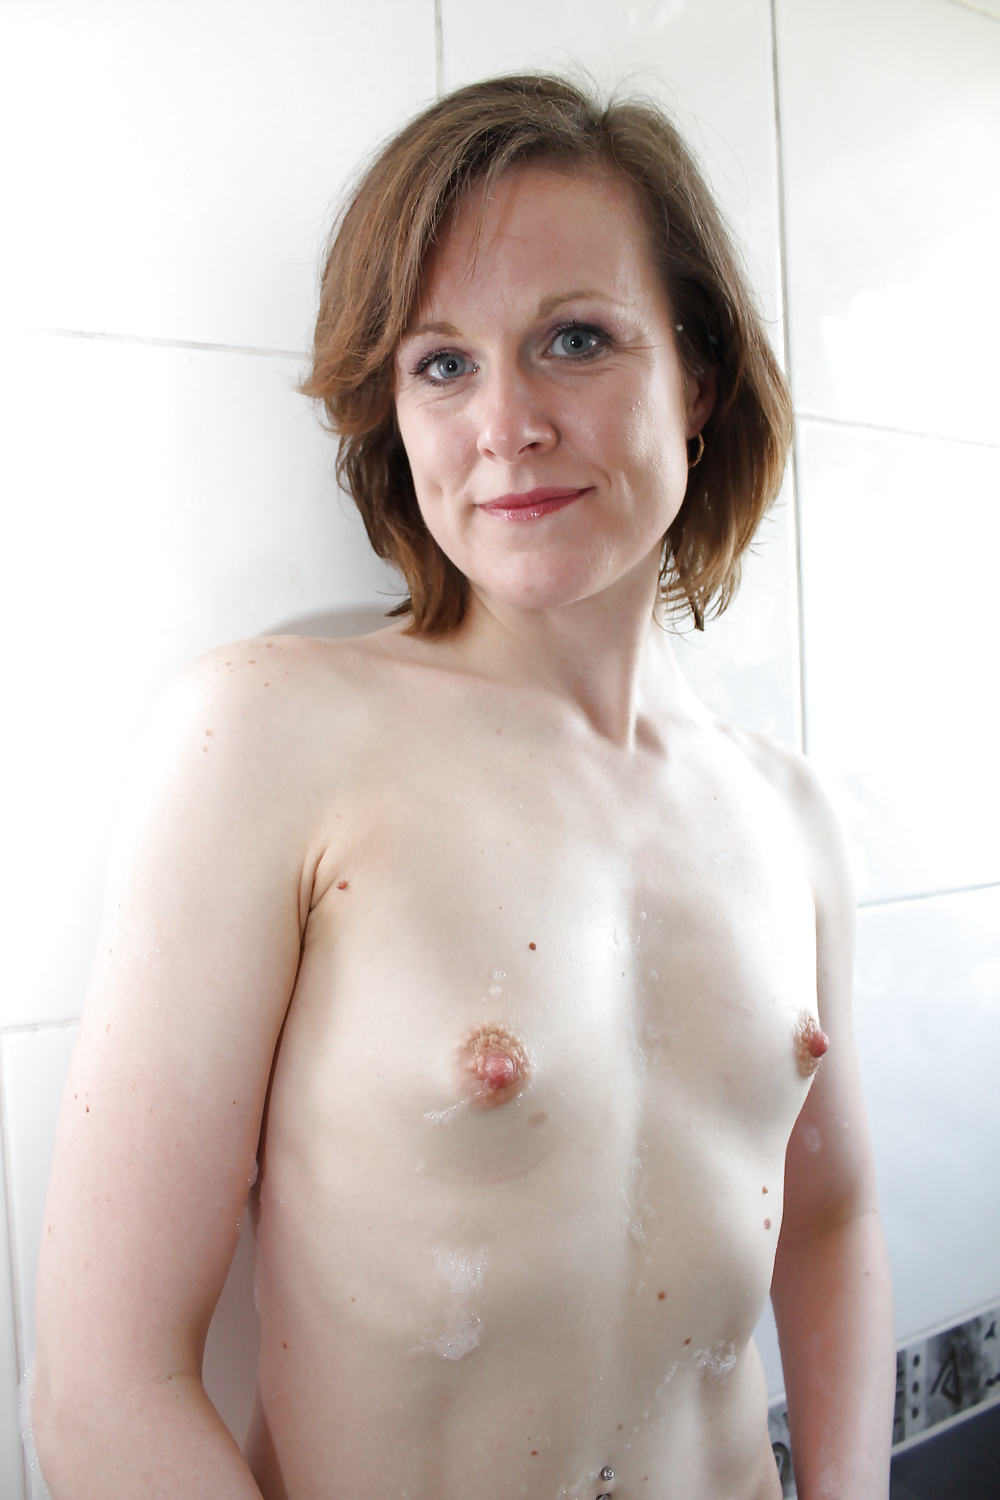 Necessary My breasts are sexy mine, not